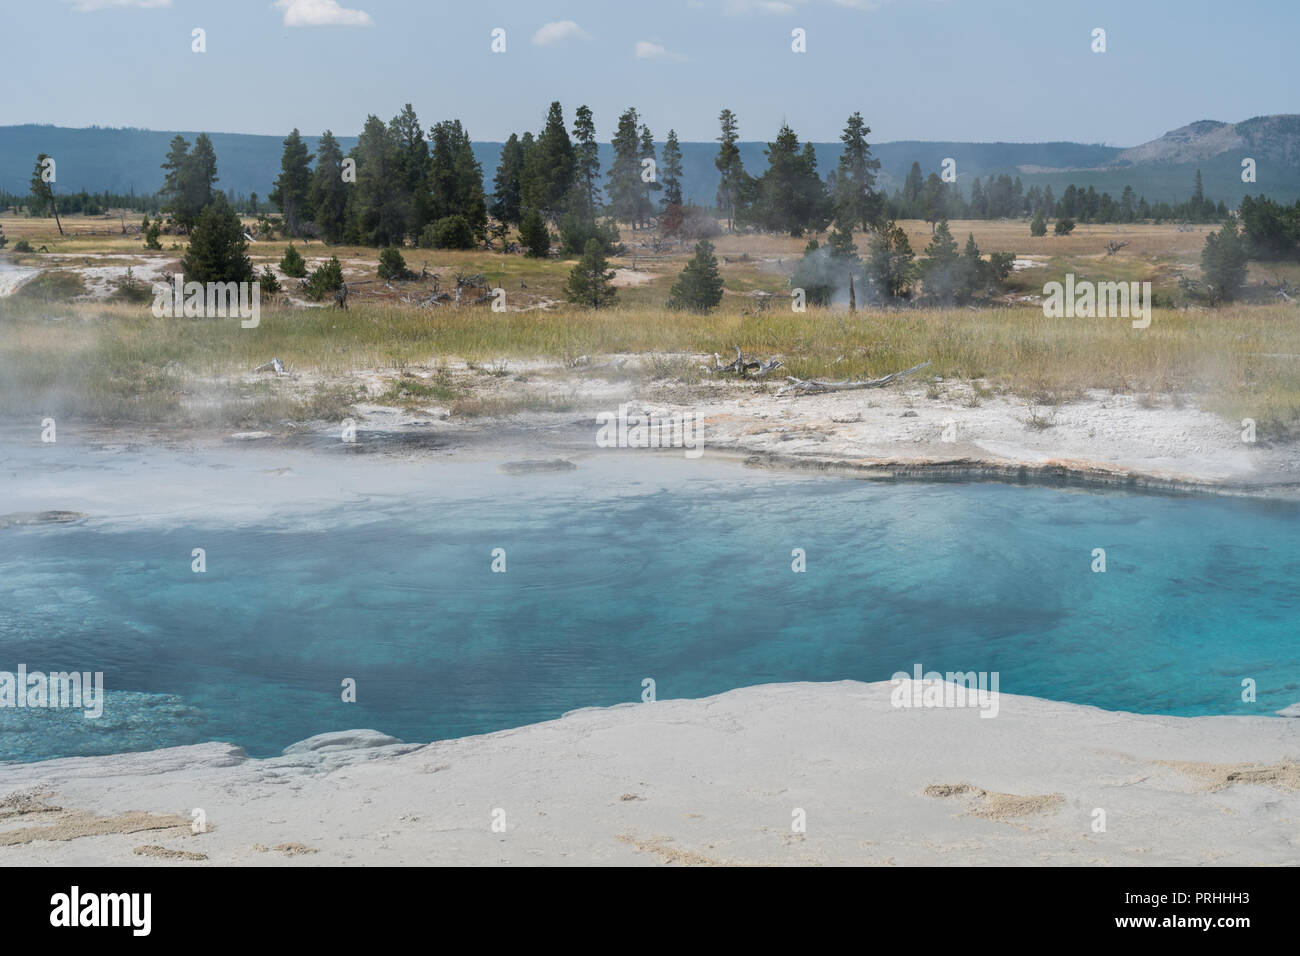 Hors piste Hot Spring dans le Parc National de Yellowstone. Banque D'Images